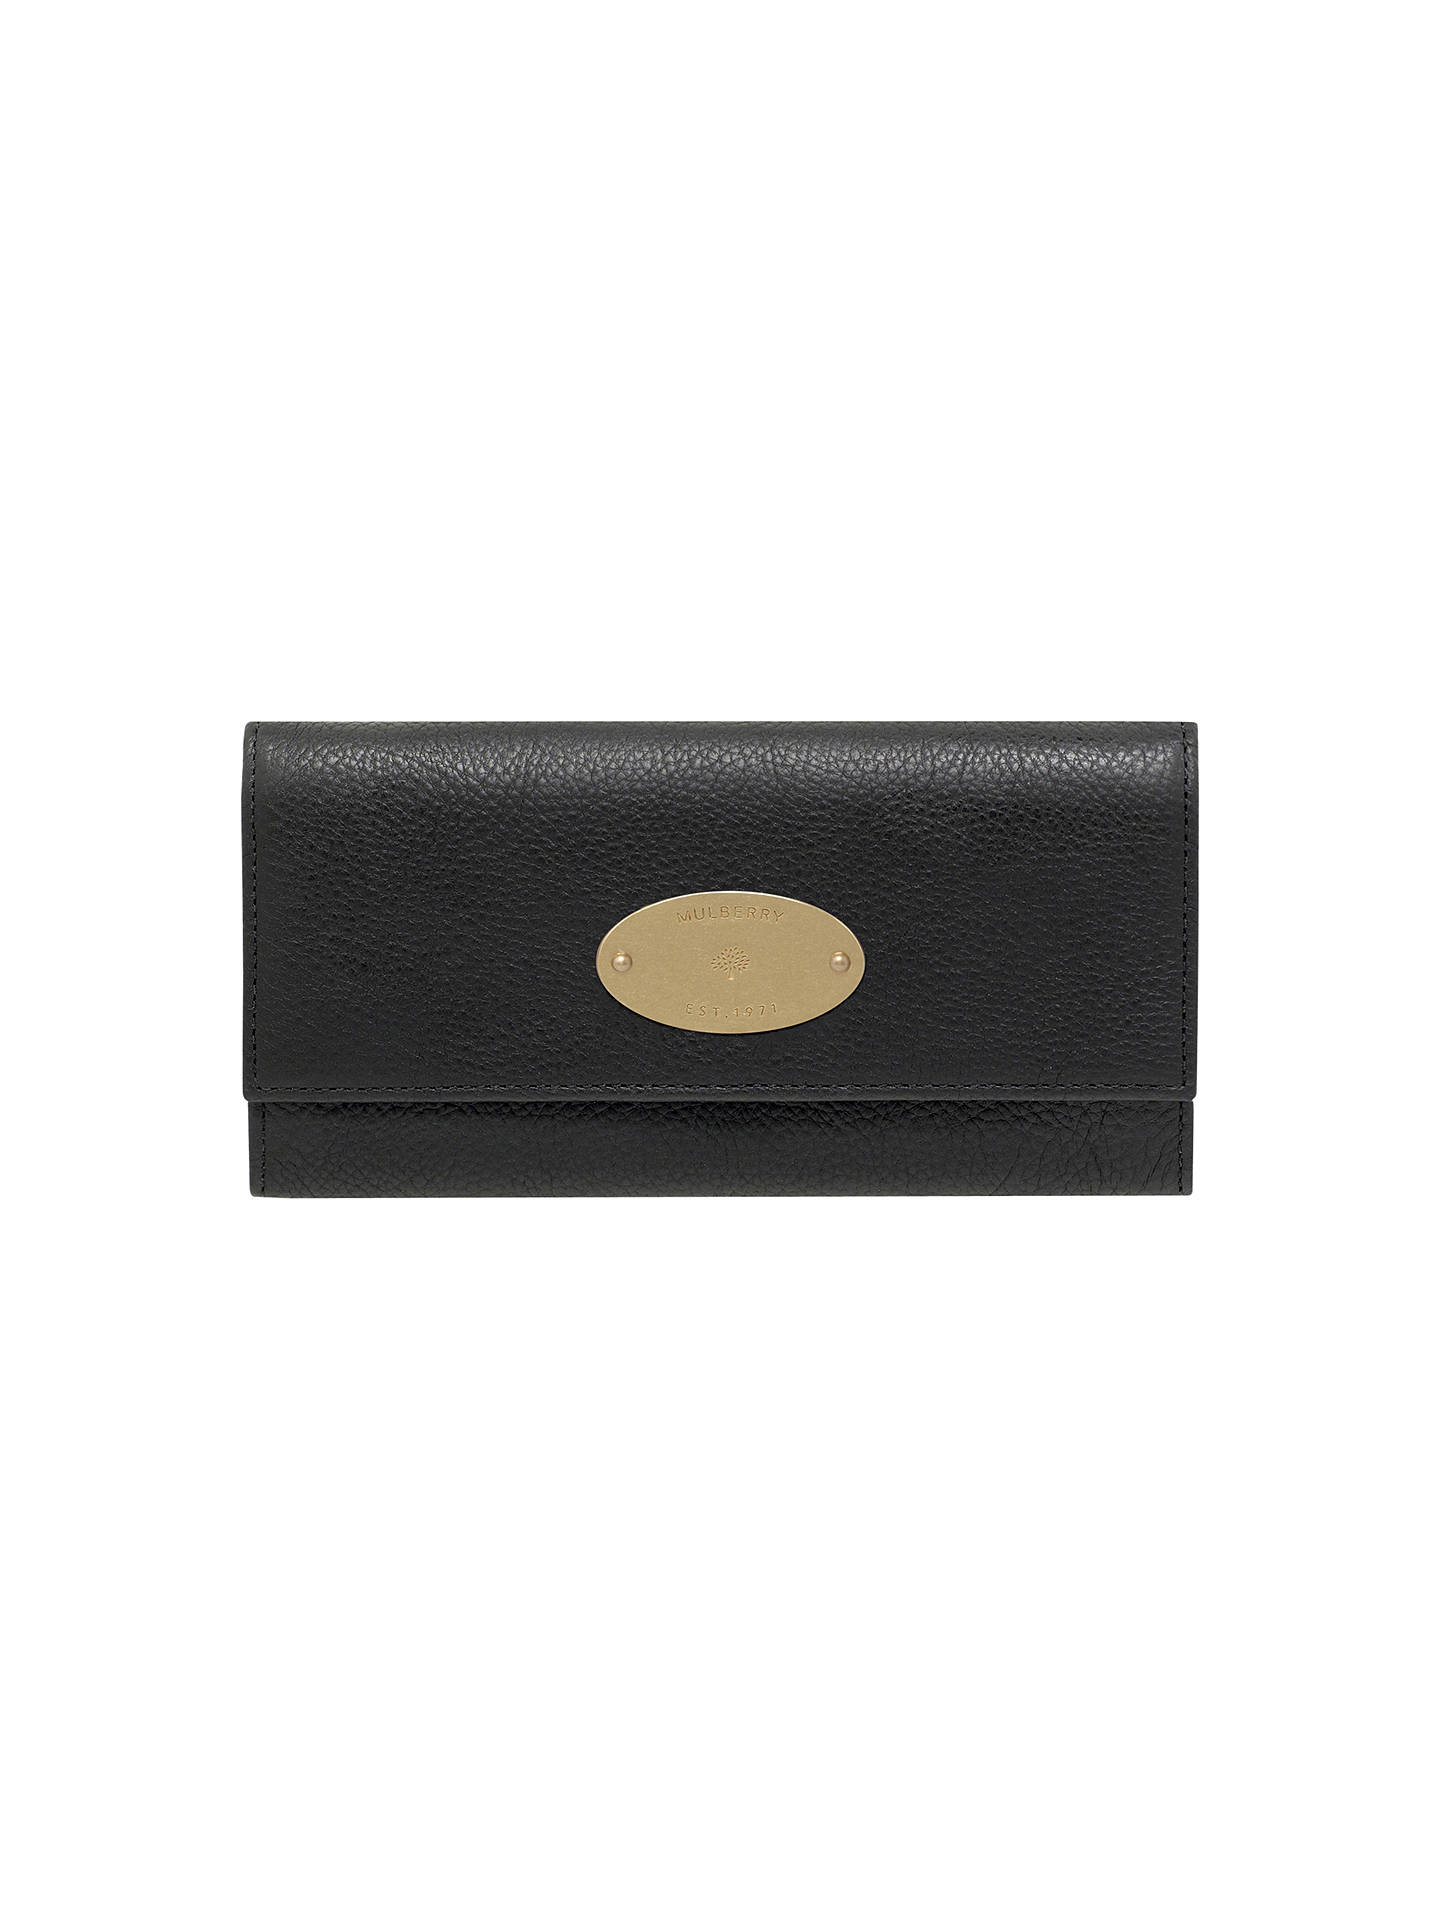 88f1d415ce Buy Mulberry Continental Leather Wallet, Black Online at johnlewis.com ...